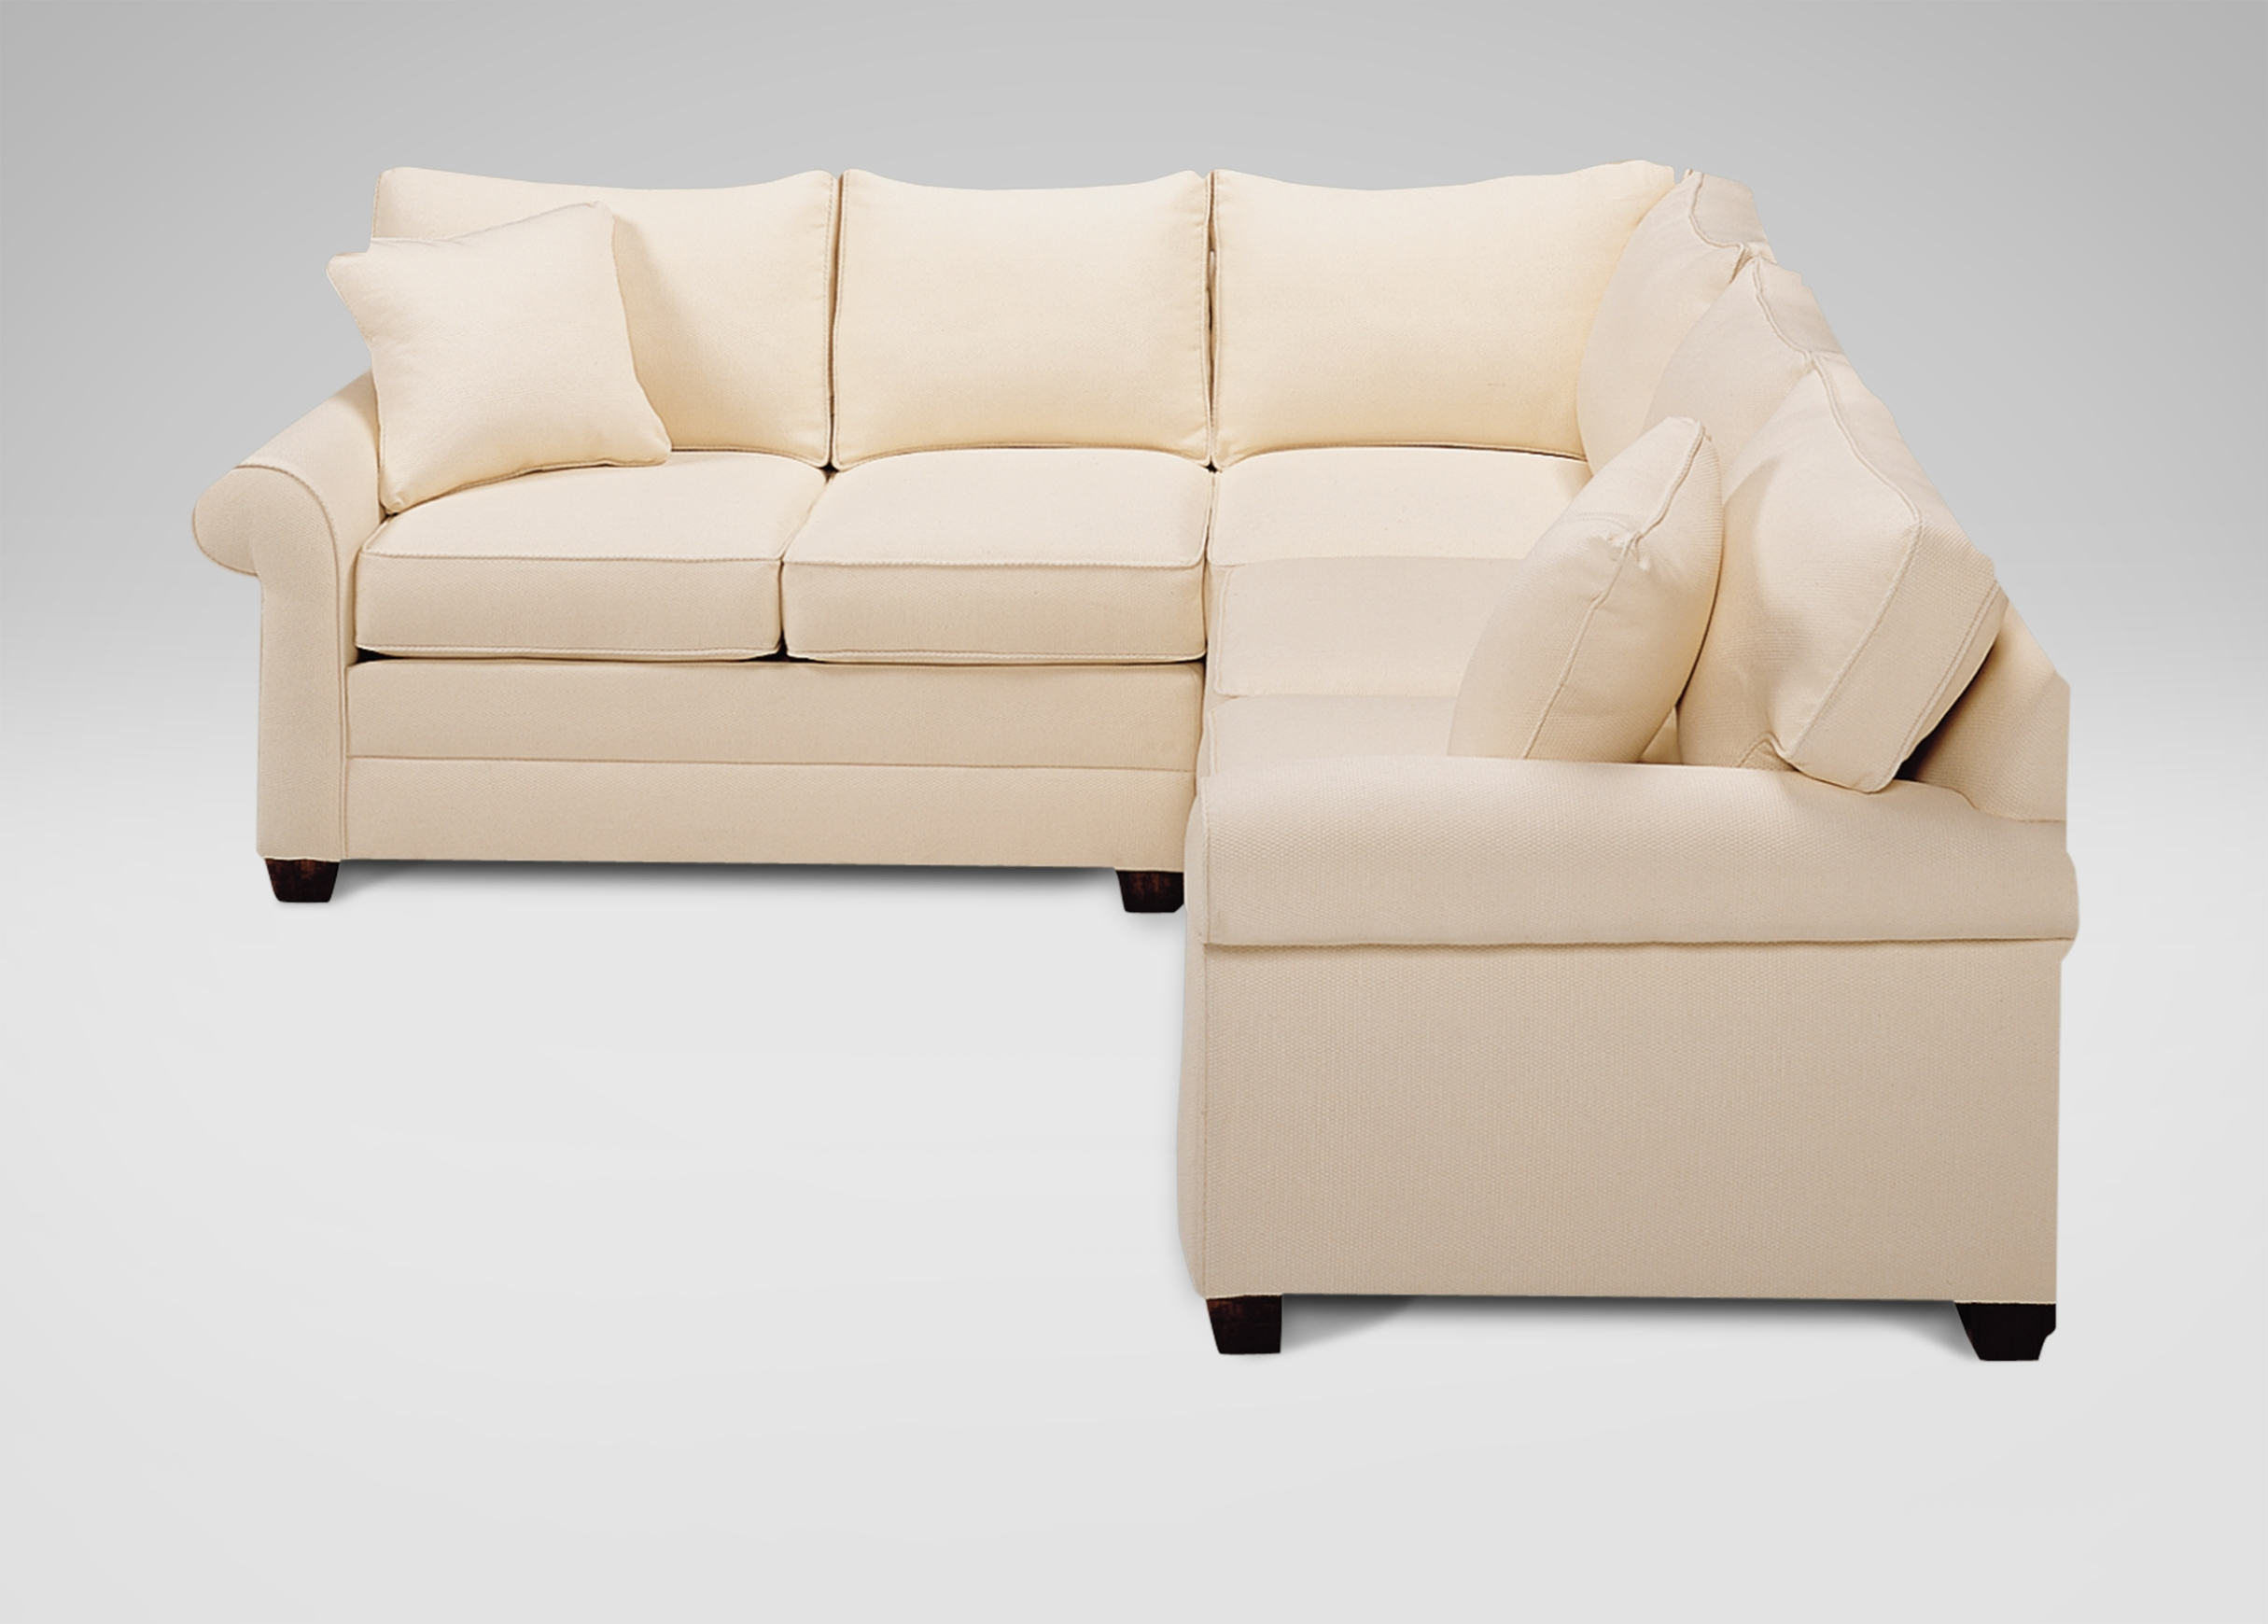 Luxury Ethan Allen Sectional Sofas 80 In Sectional Sleeper Sofa throughout Sectional Sofas at Ethan Allen (Image 7 of 10)